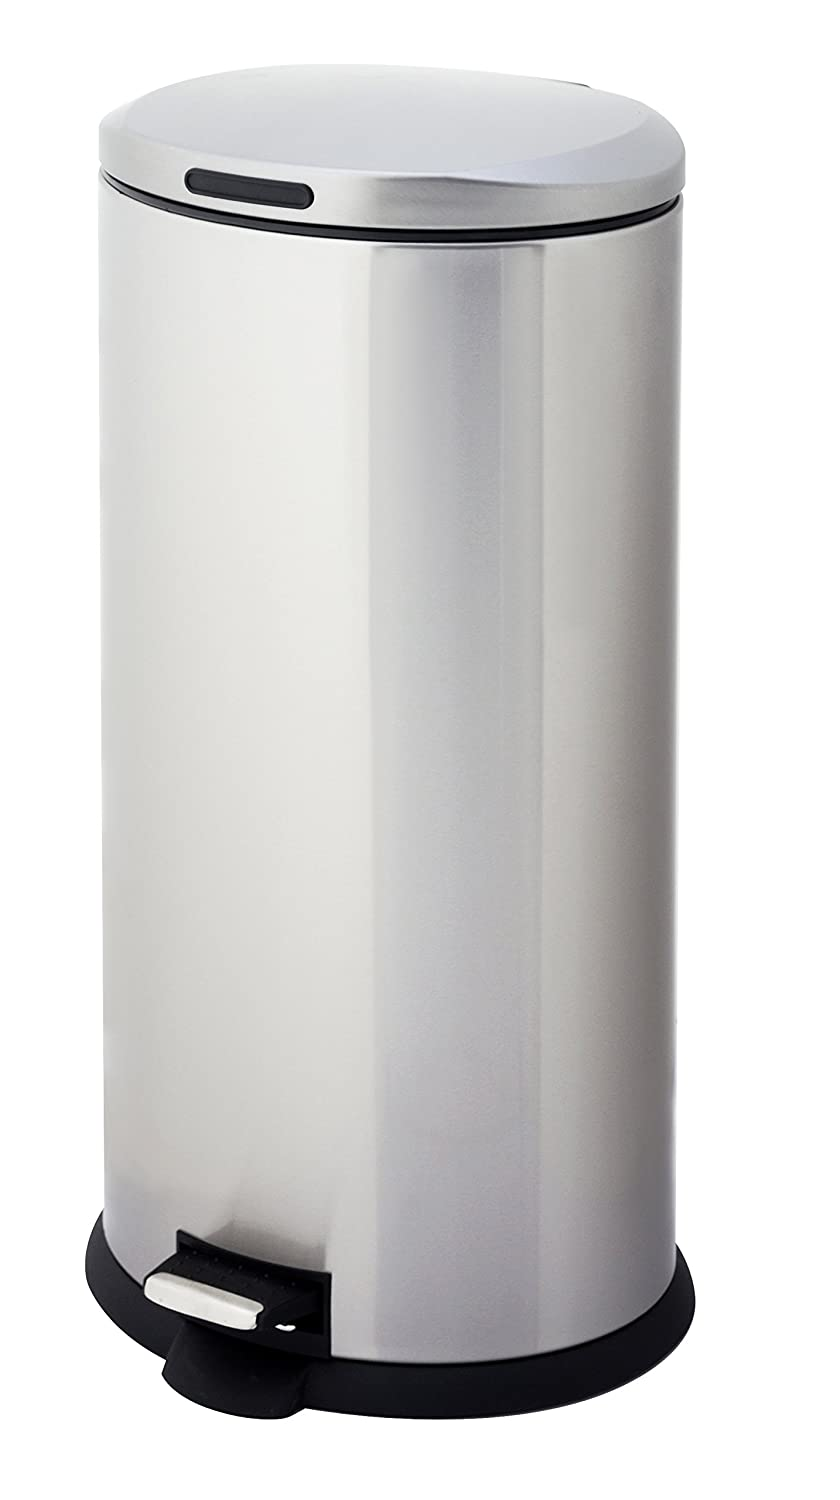 Amazon.com: HomeZone VA40914A 30L Stainless Steel Oval Step Trash Can: Home  & Kitchen